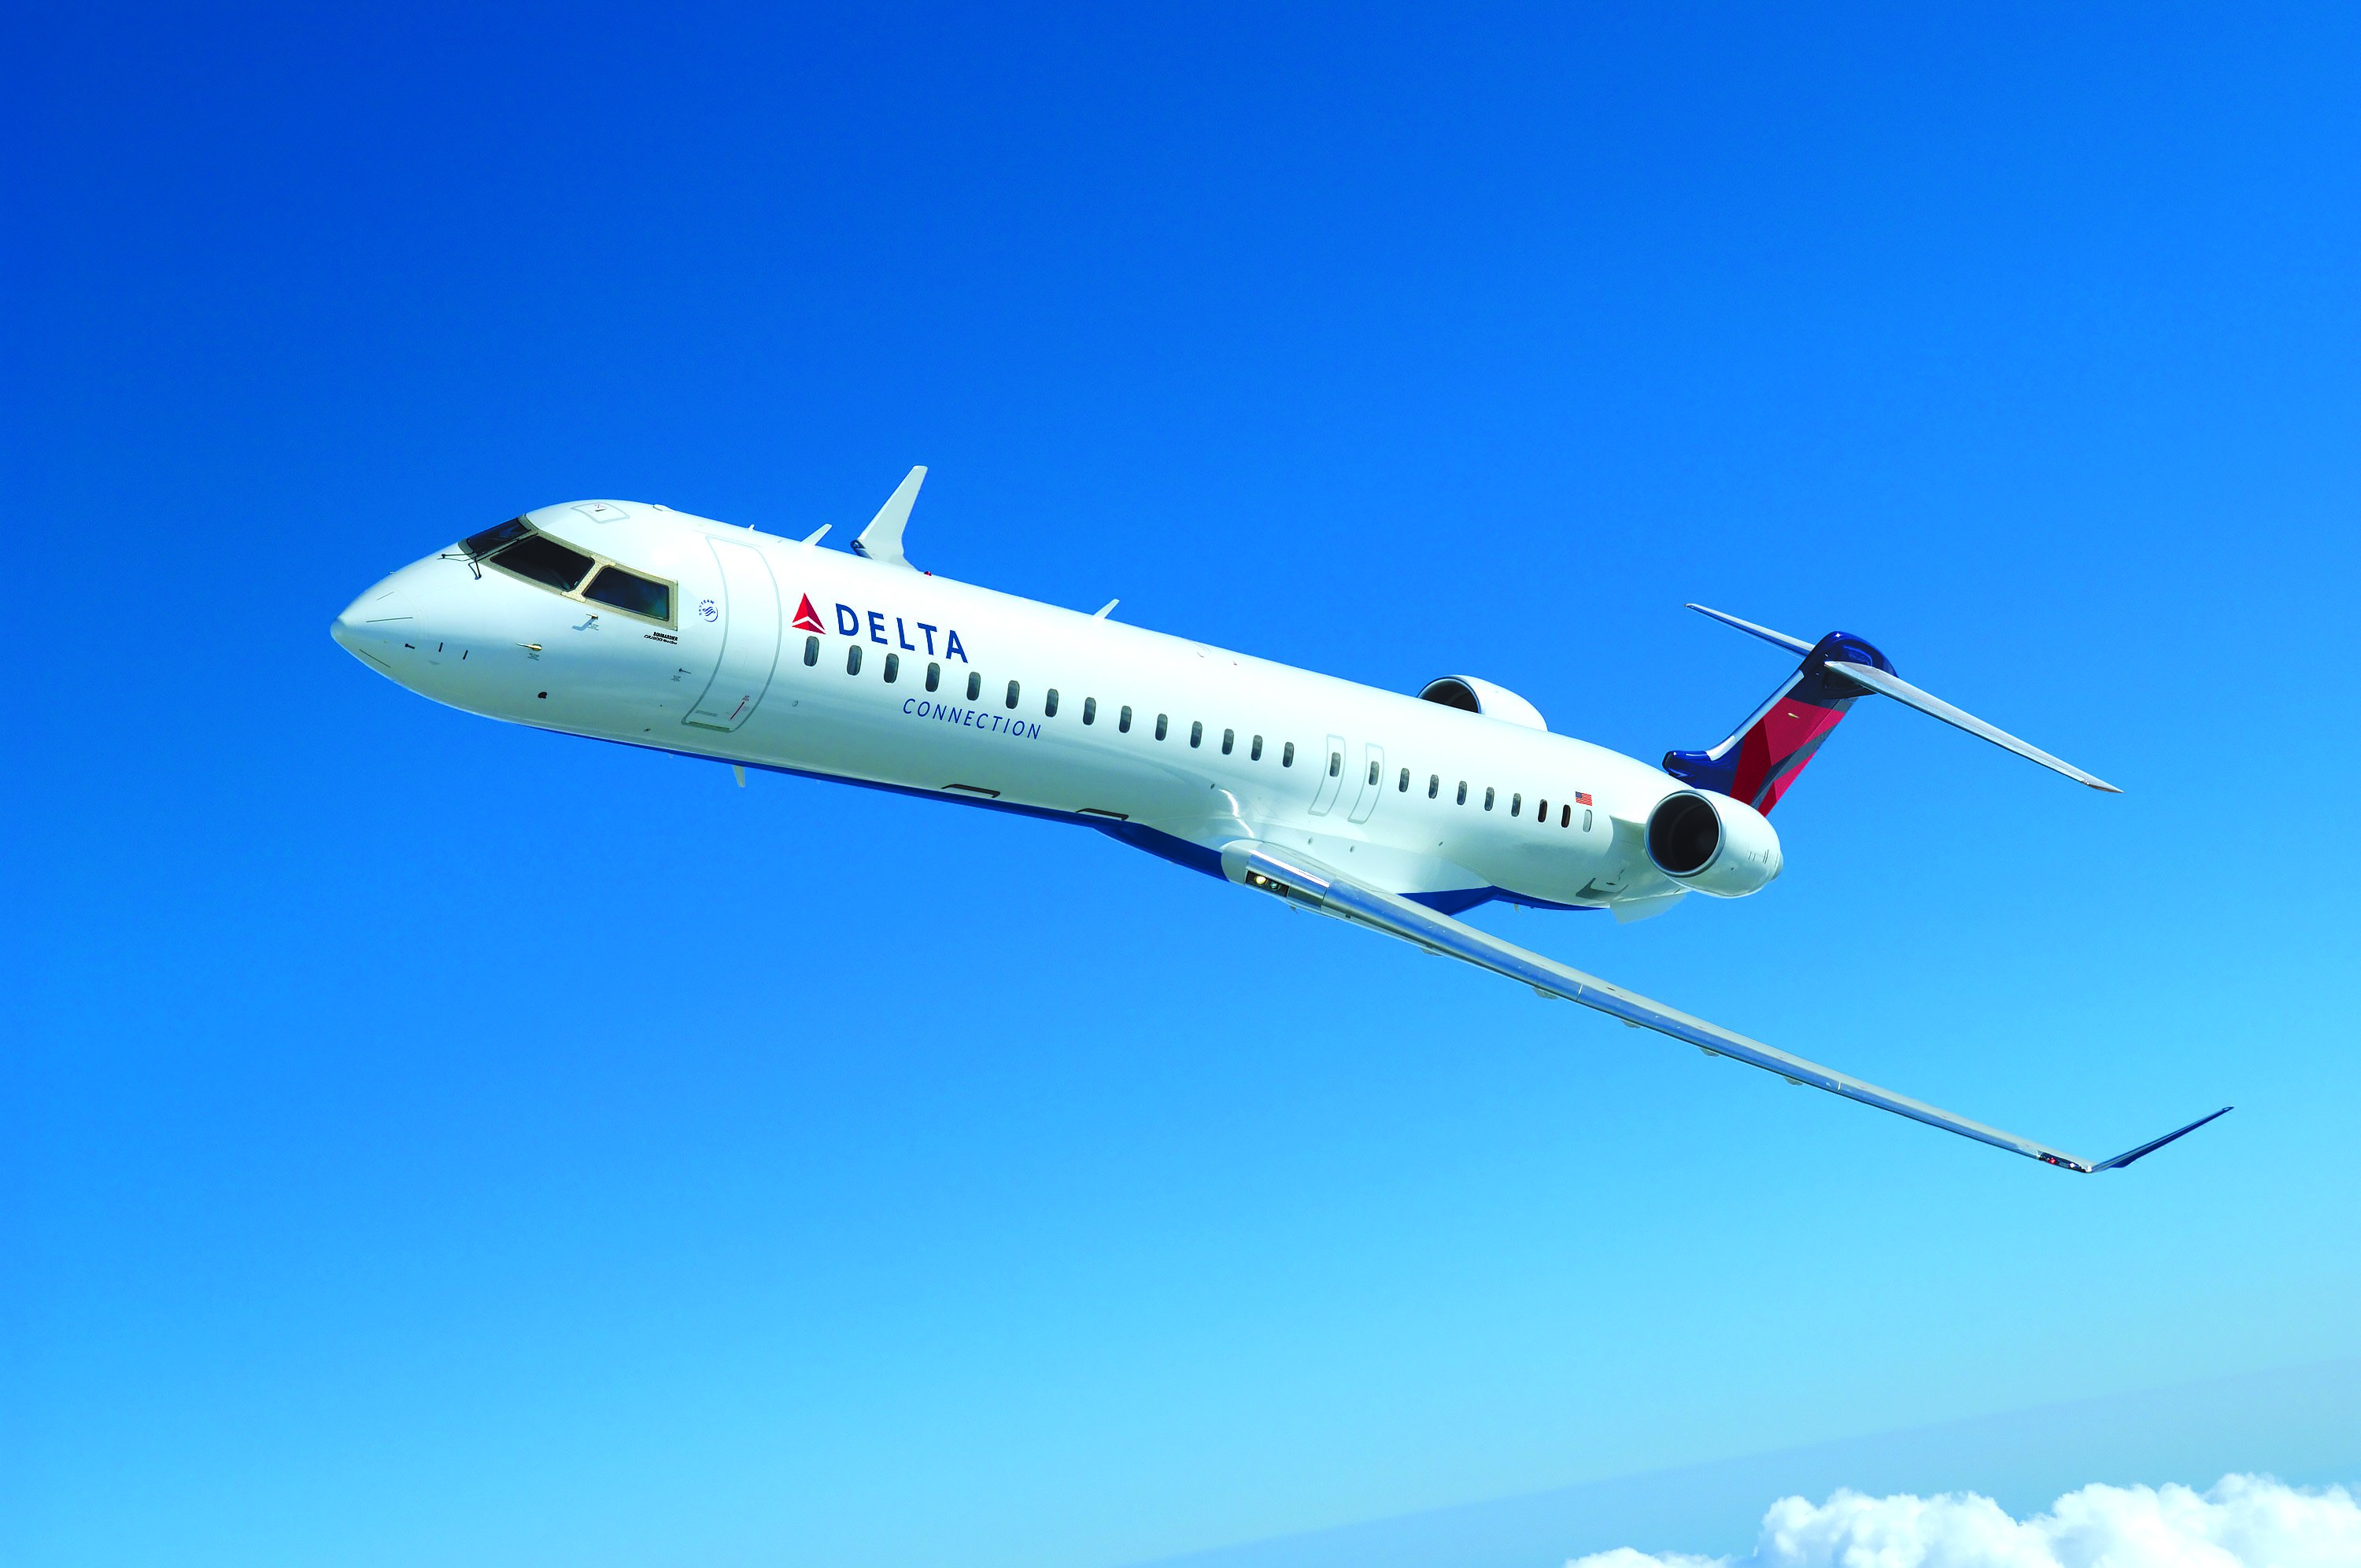 Flights to Belize City: Delta added four Weekly Runs!